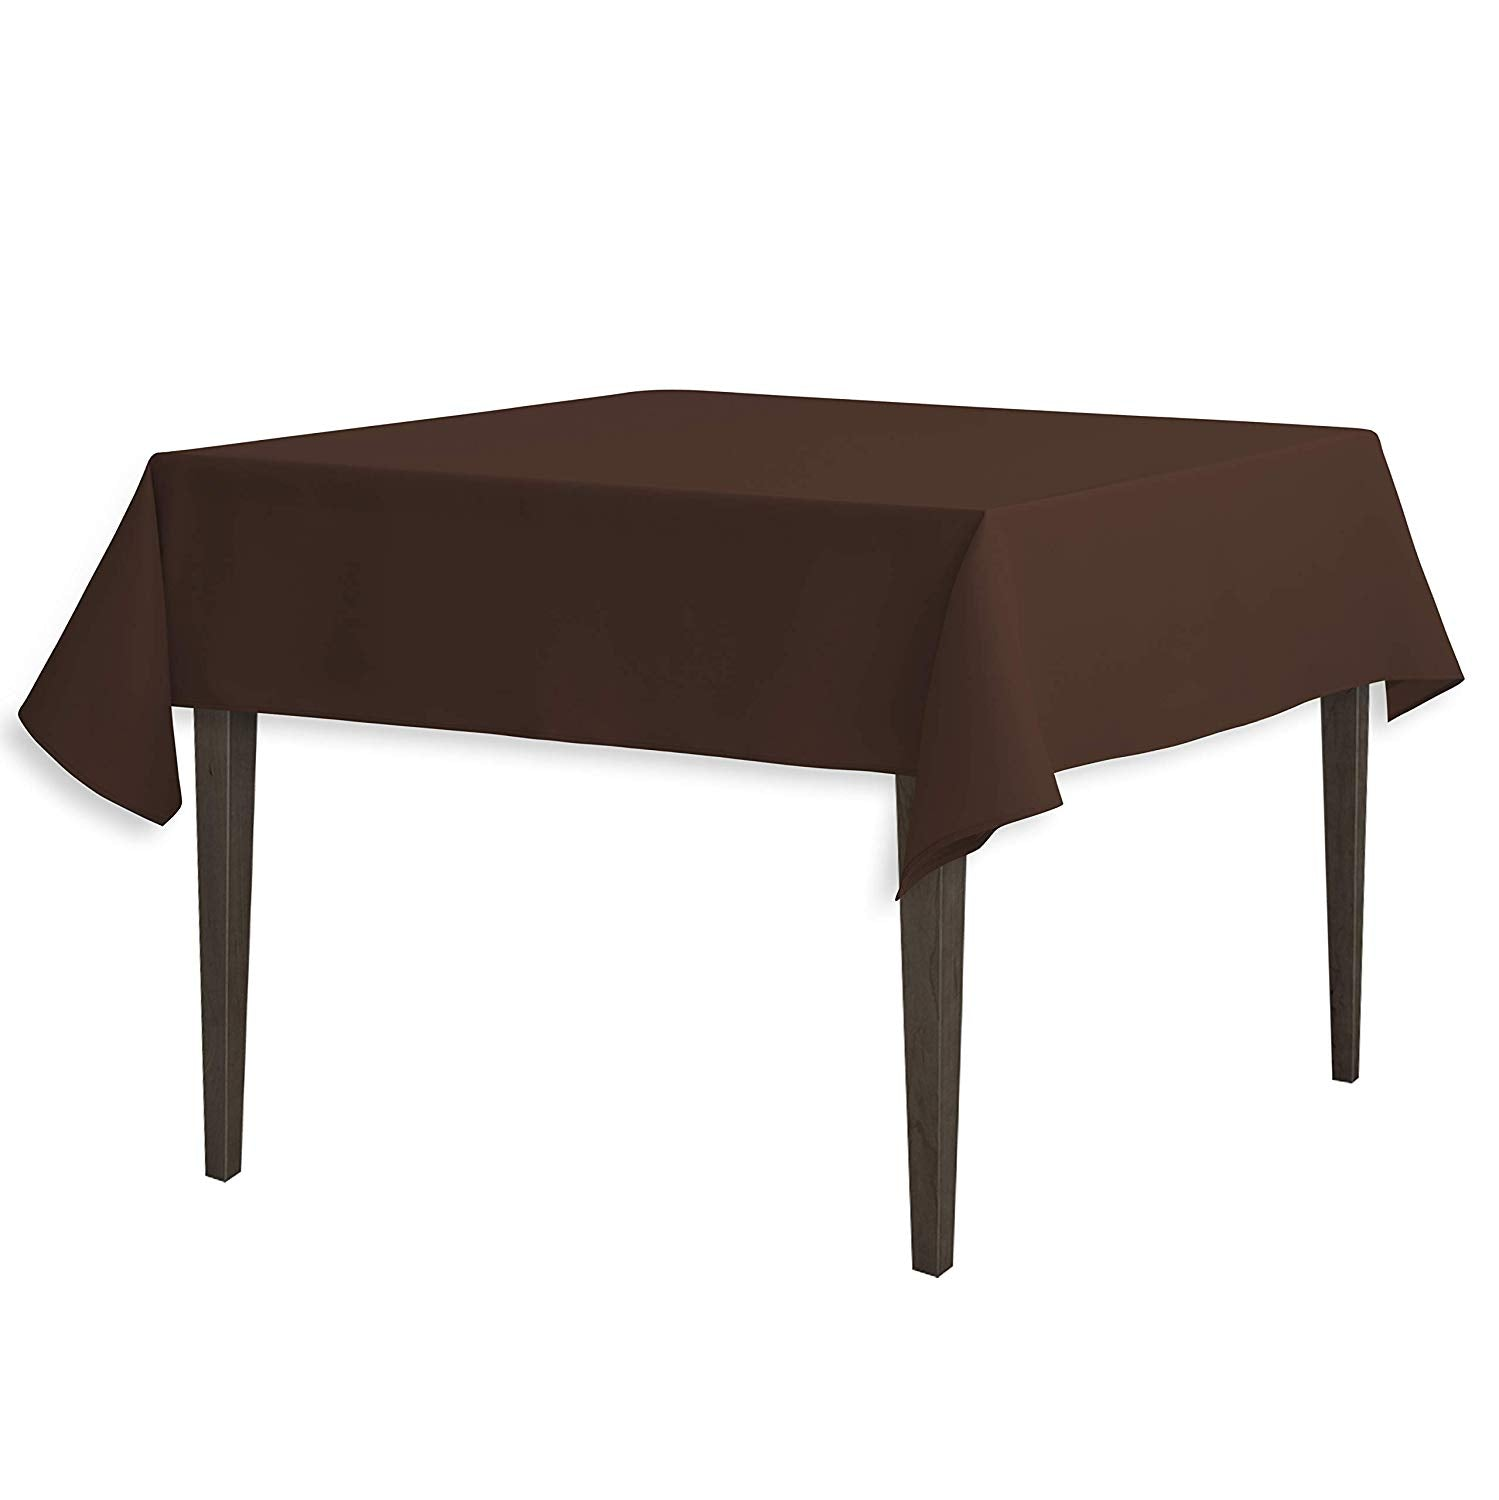 Tablecloth 54-Inch Square Polyester Tablecloth Chocolate